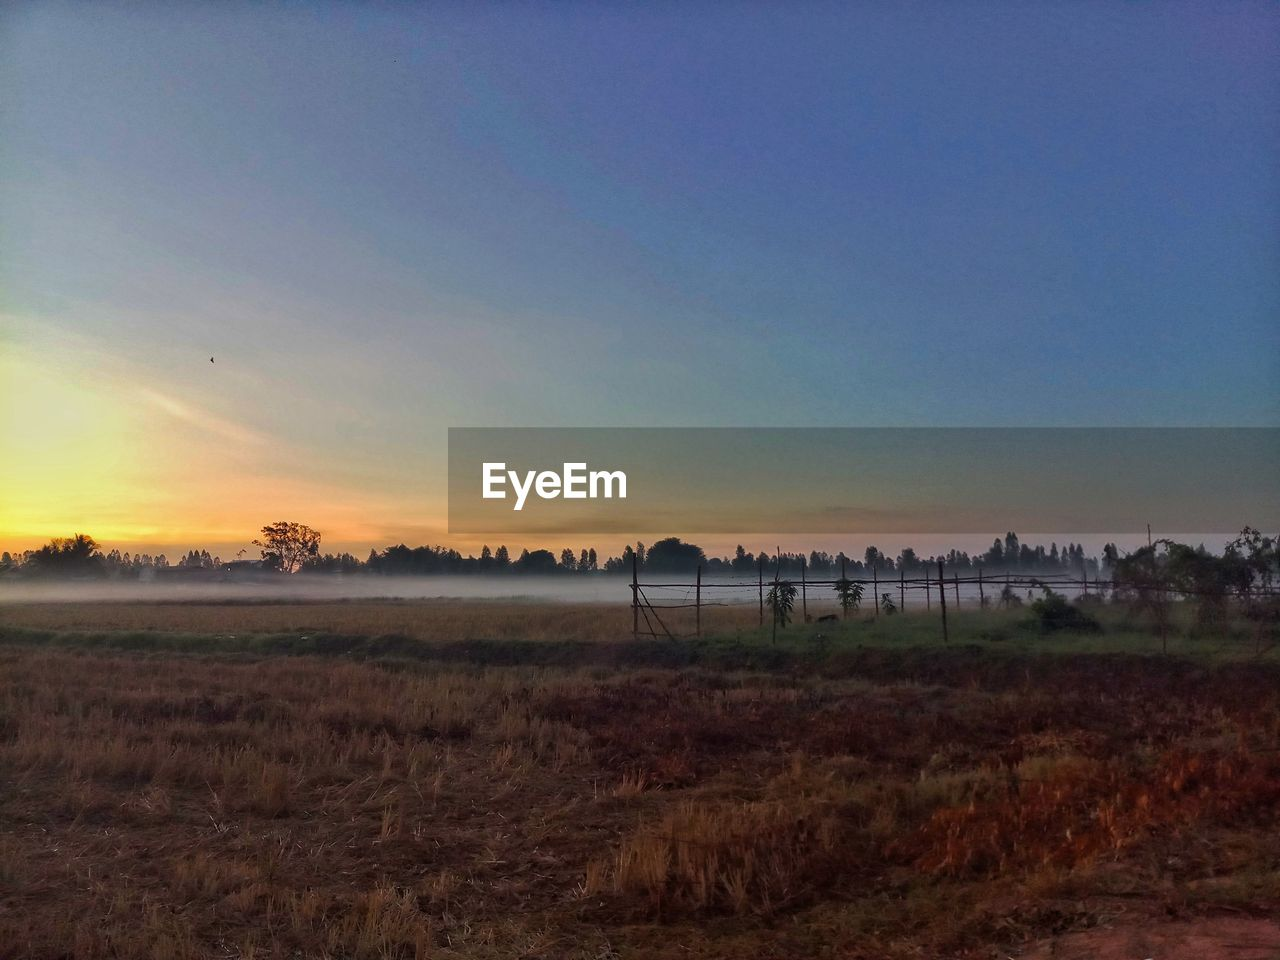 sky, scenics - nature, tranquility, environment, tranquil scene, sunset, landscape, beauty in nature, land, nature, field, plant, no people, copy space, non-urban scene, grass, orange color, outdoors, idyllic, cloud - sky